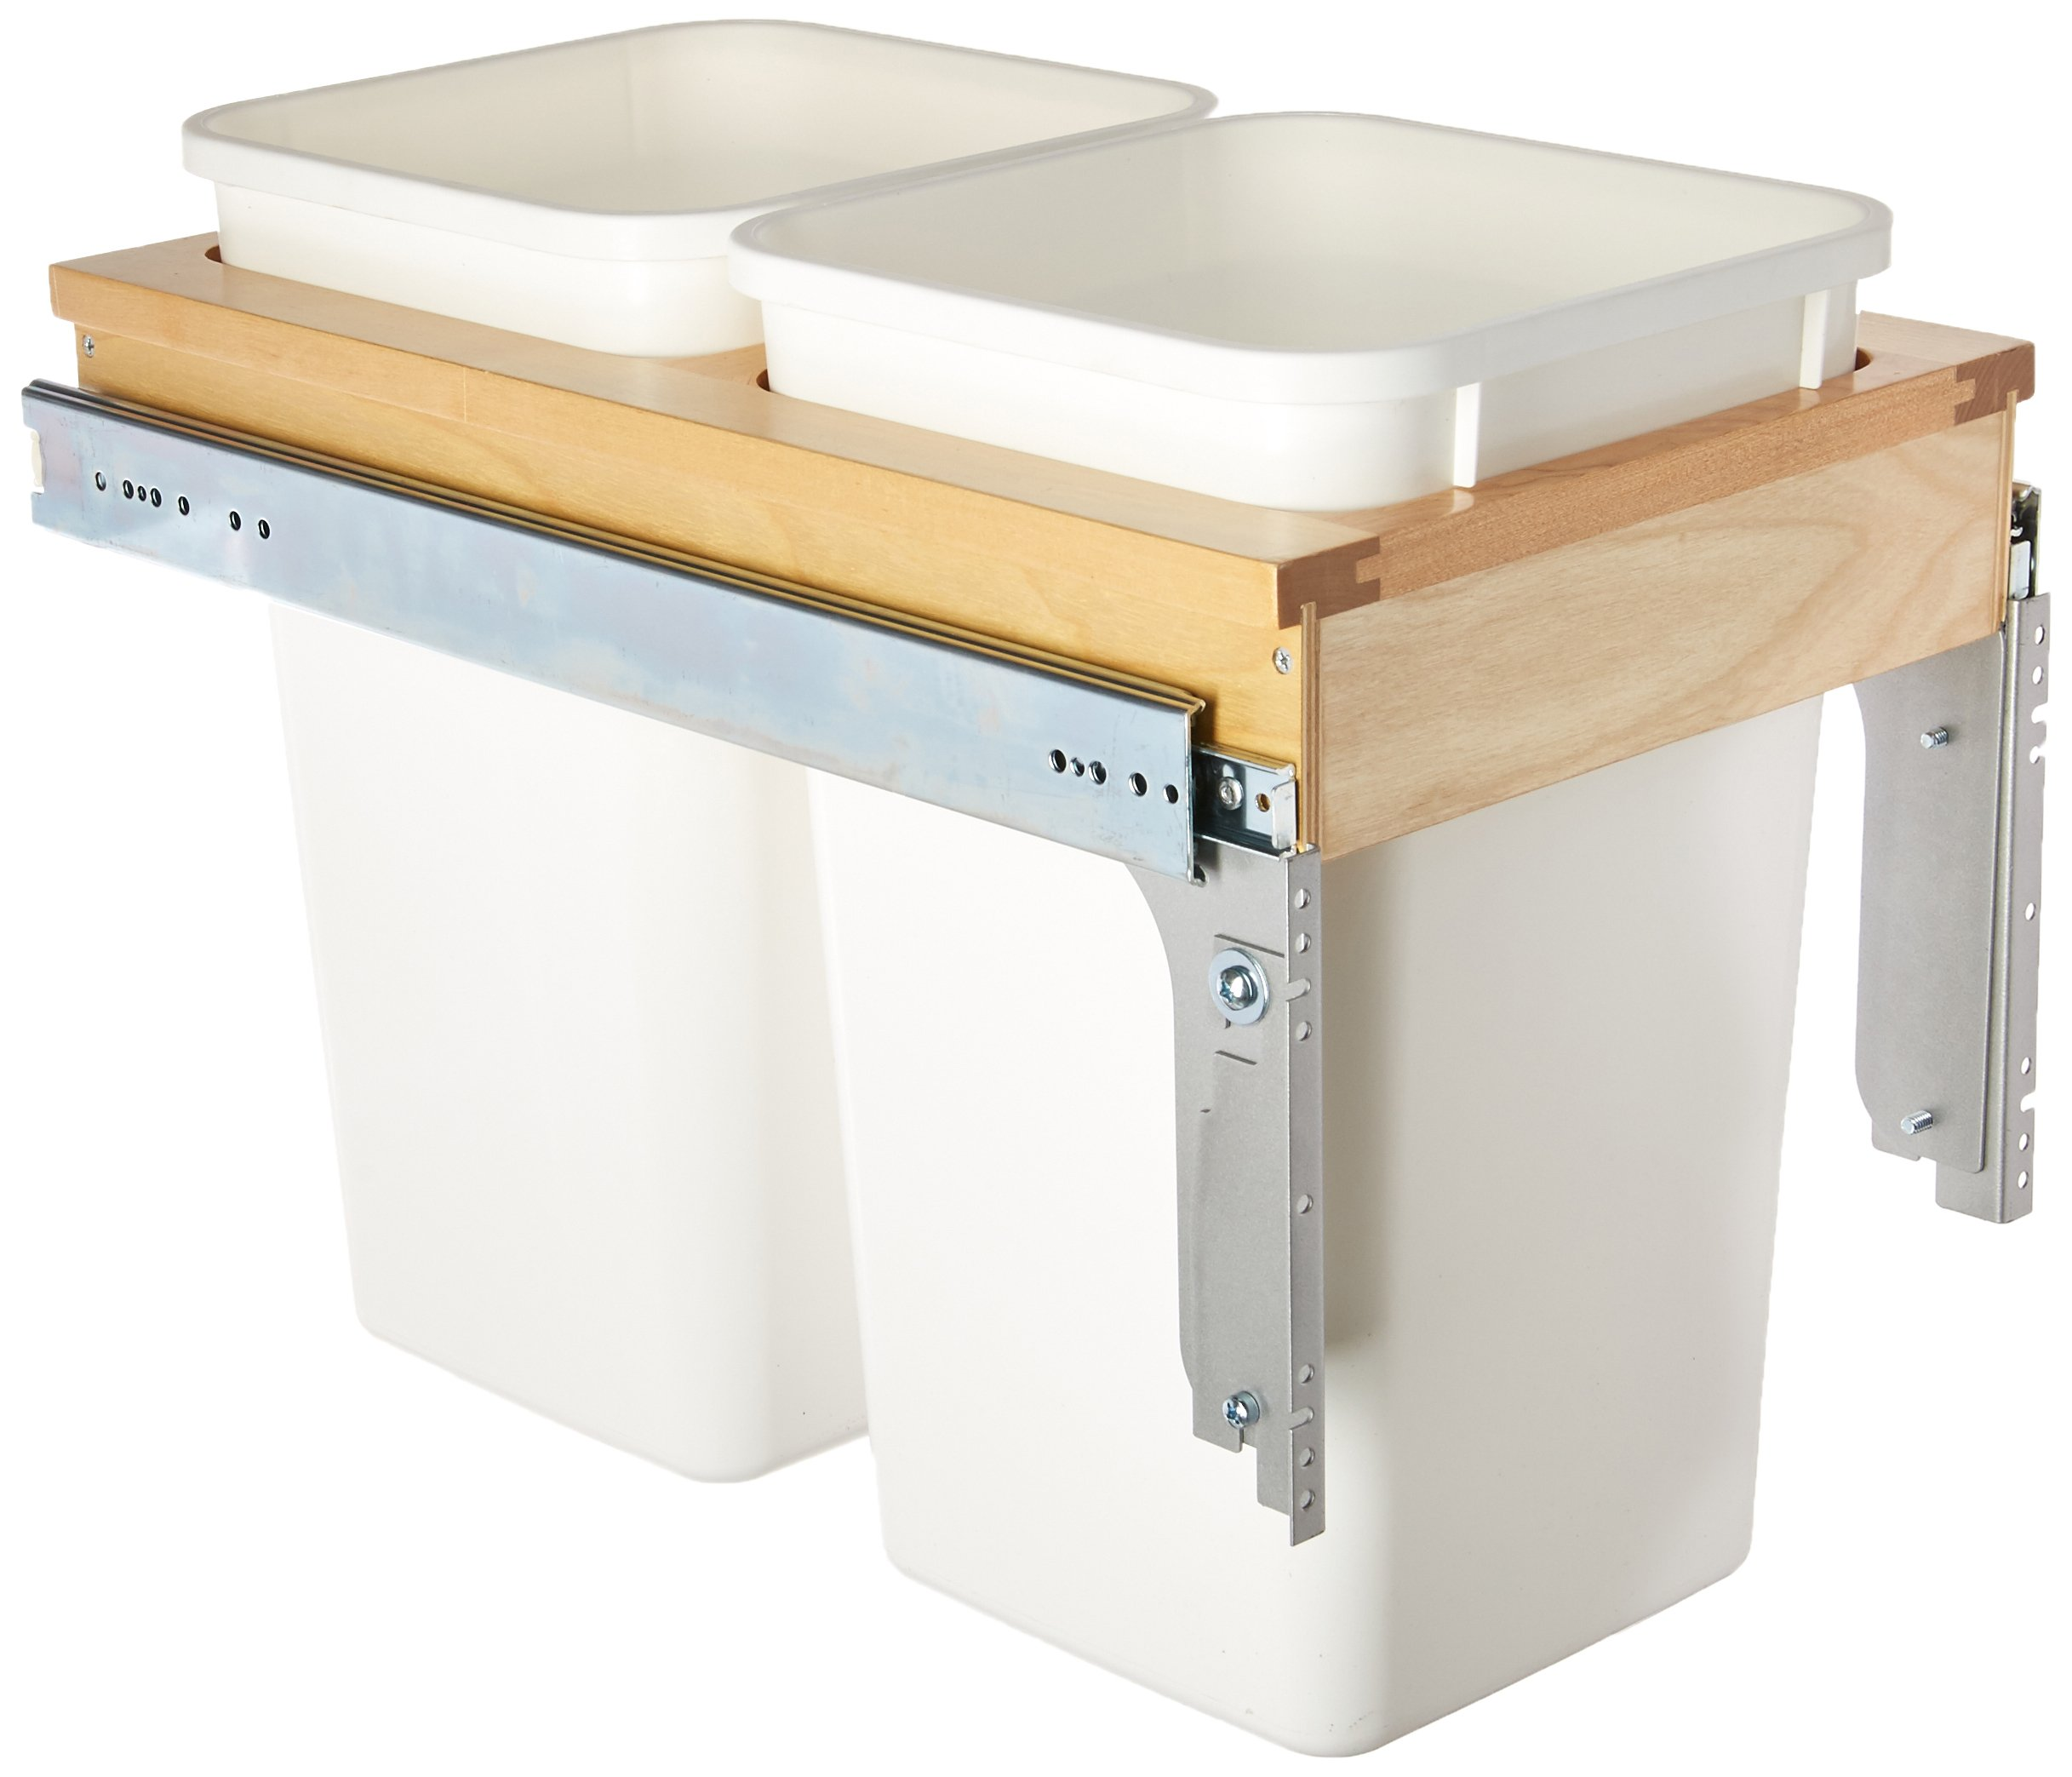 Rev-A-Shelf Dbl 27 QT Top Mount Waste Container, Natural by Rev-A-Shelf